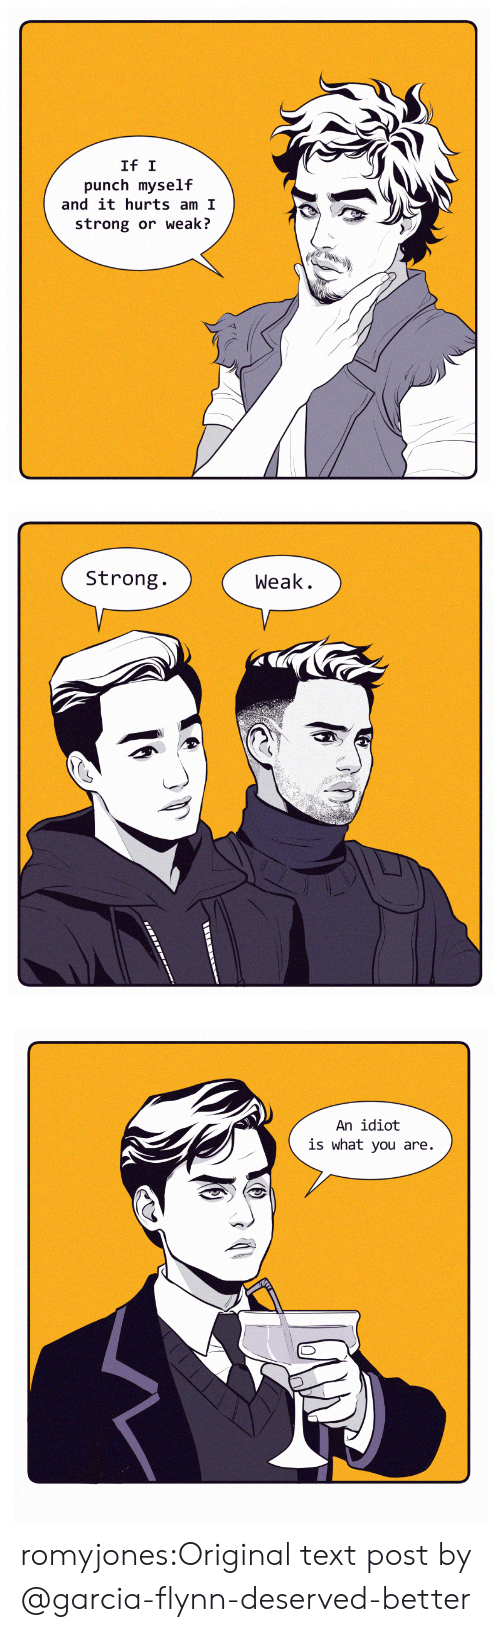 Tumblr, Blog, and Http: If I  punch myself  and it hurts am I  strong or weaki?   Strong.  Weak.   An idiot  is what you are. romyjones:Original text post by @garcia-flynn-deserved-better